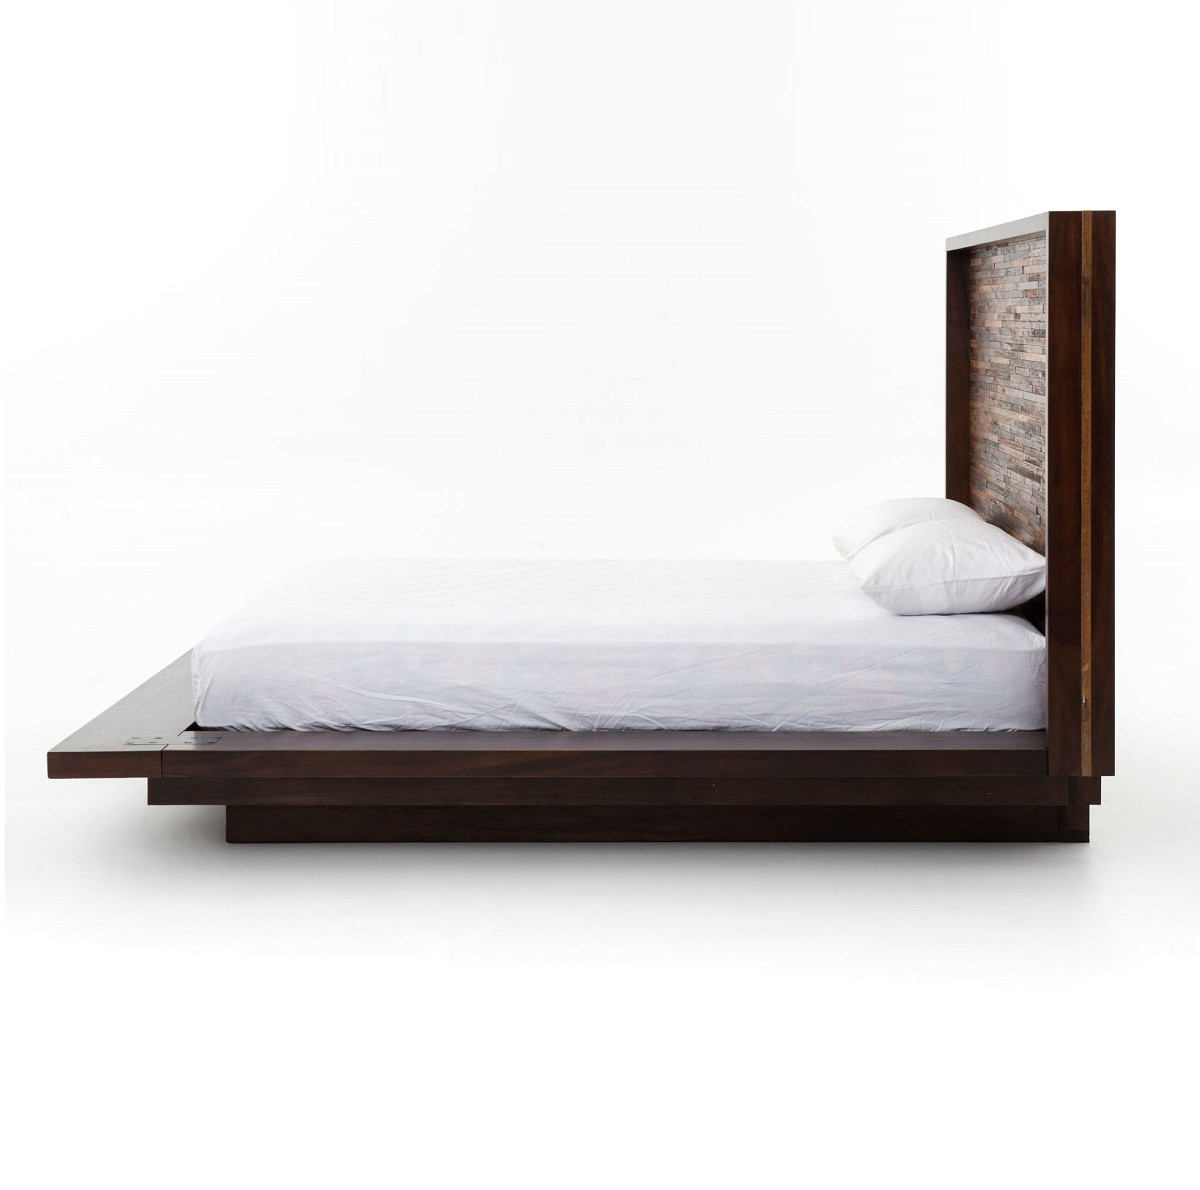 King platform bed frame -  Devon Reclaimed Wood King Platform Bed Frame